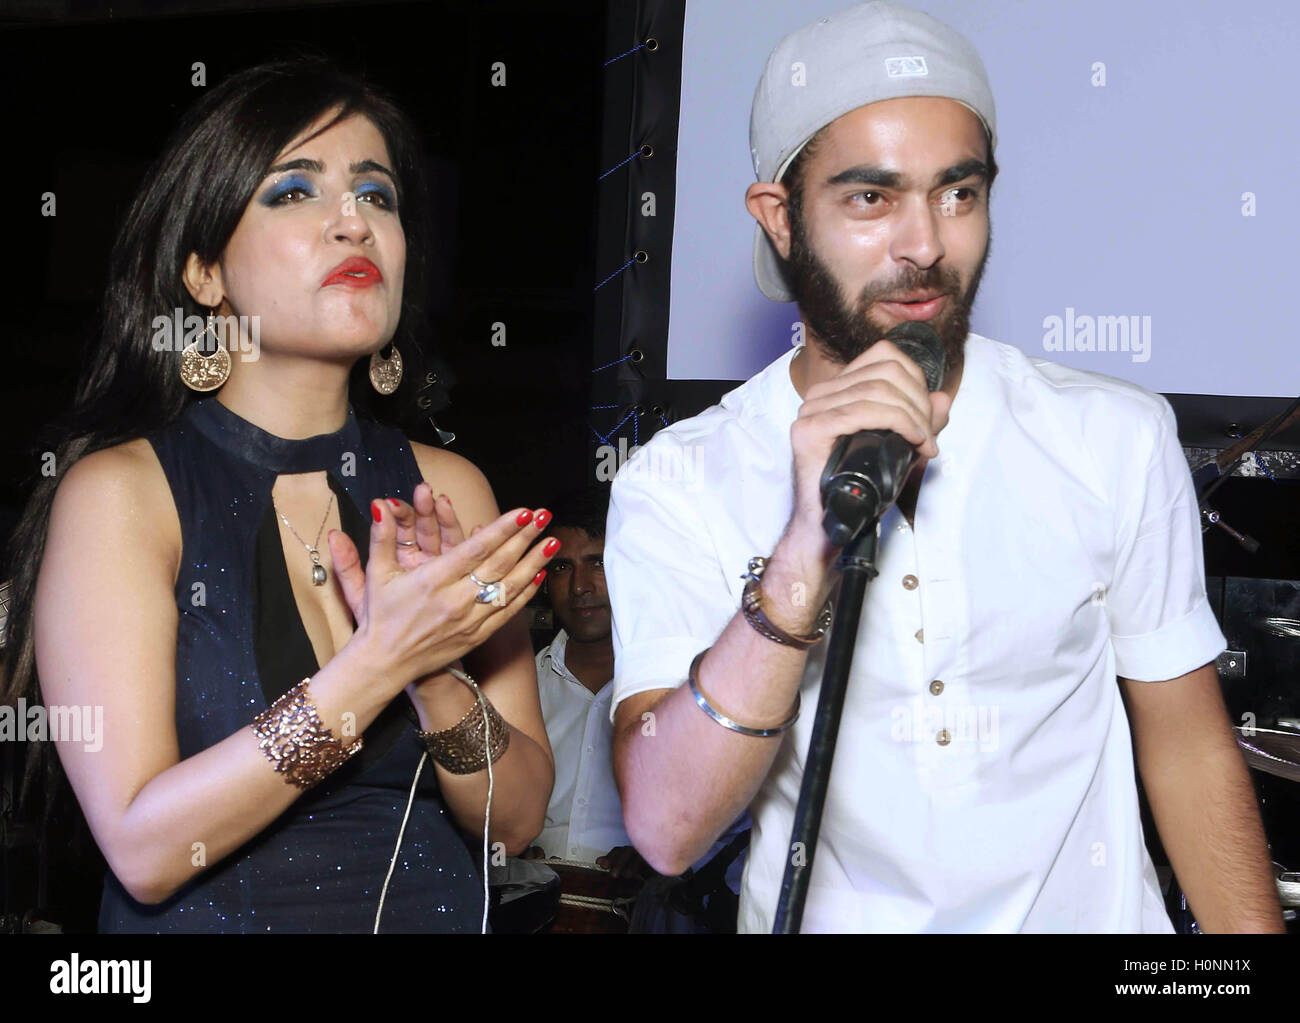 Bollywood personalities, playback singer Shibani Kashyap (L) with actor Manjot Singh at the Drunk House, in New - Stock Image